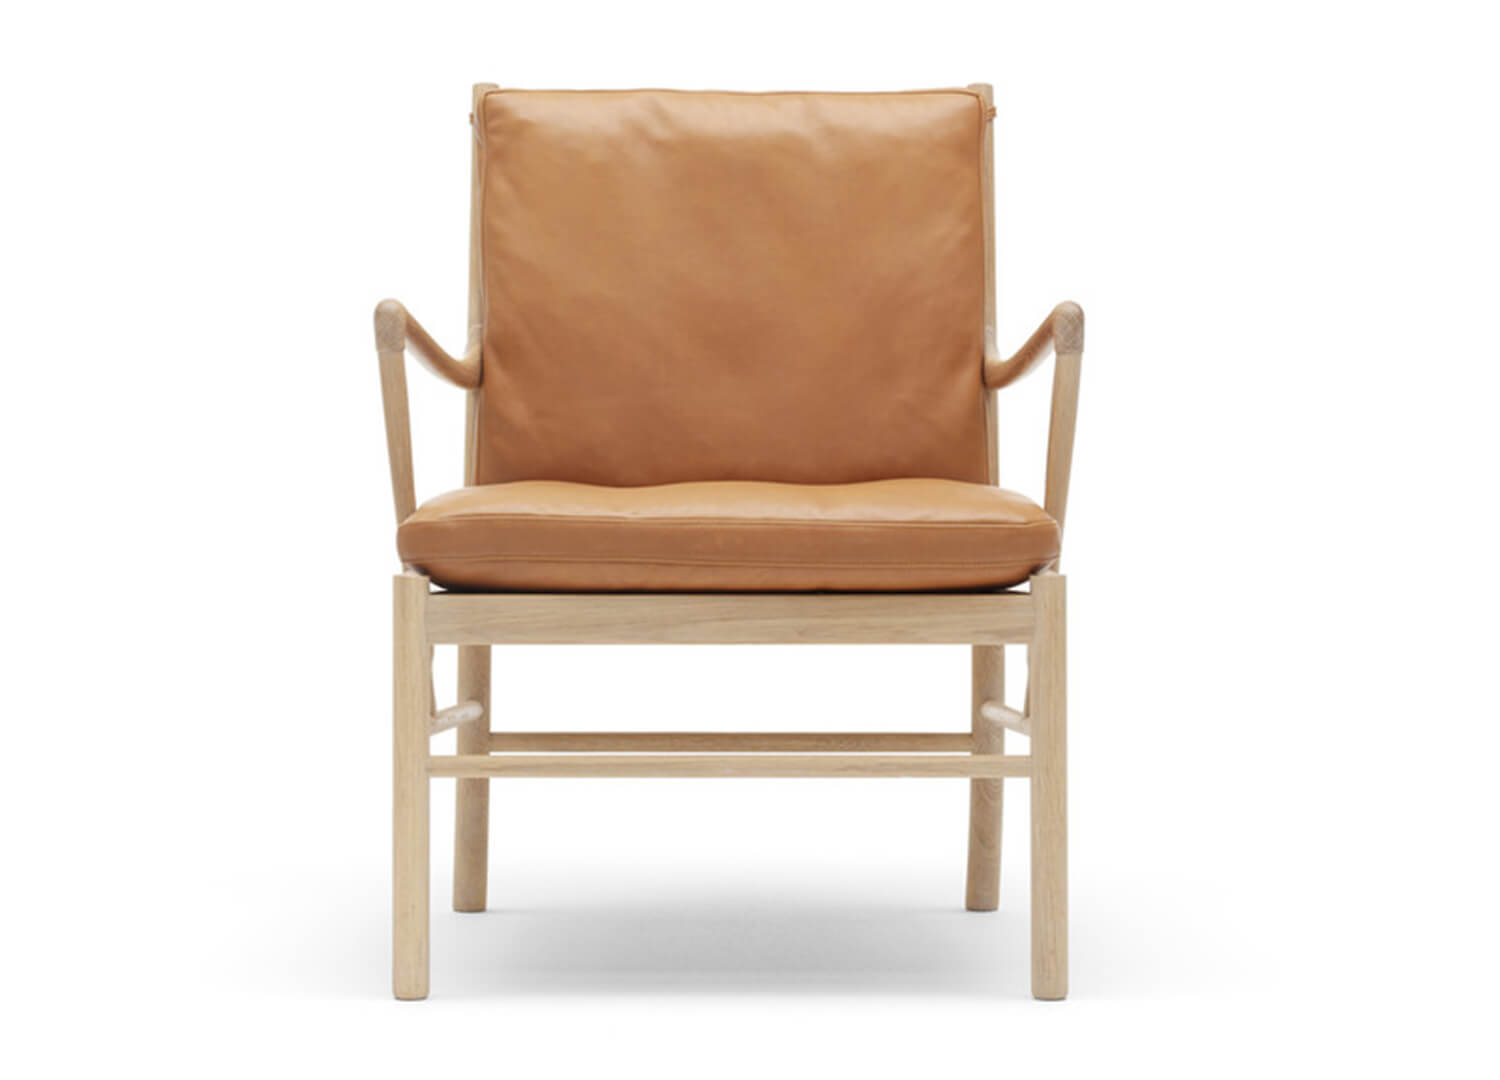 est-living-carl-hansen-OW149-colonial-chair